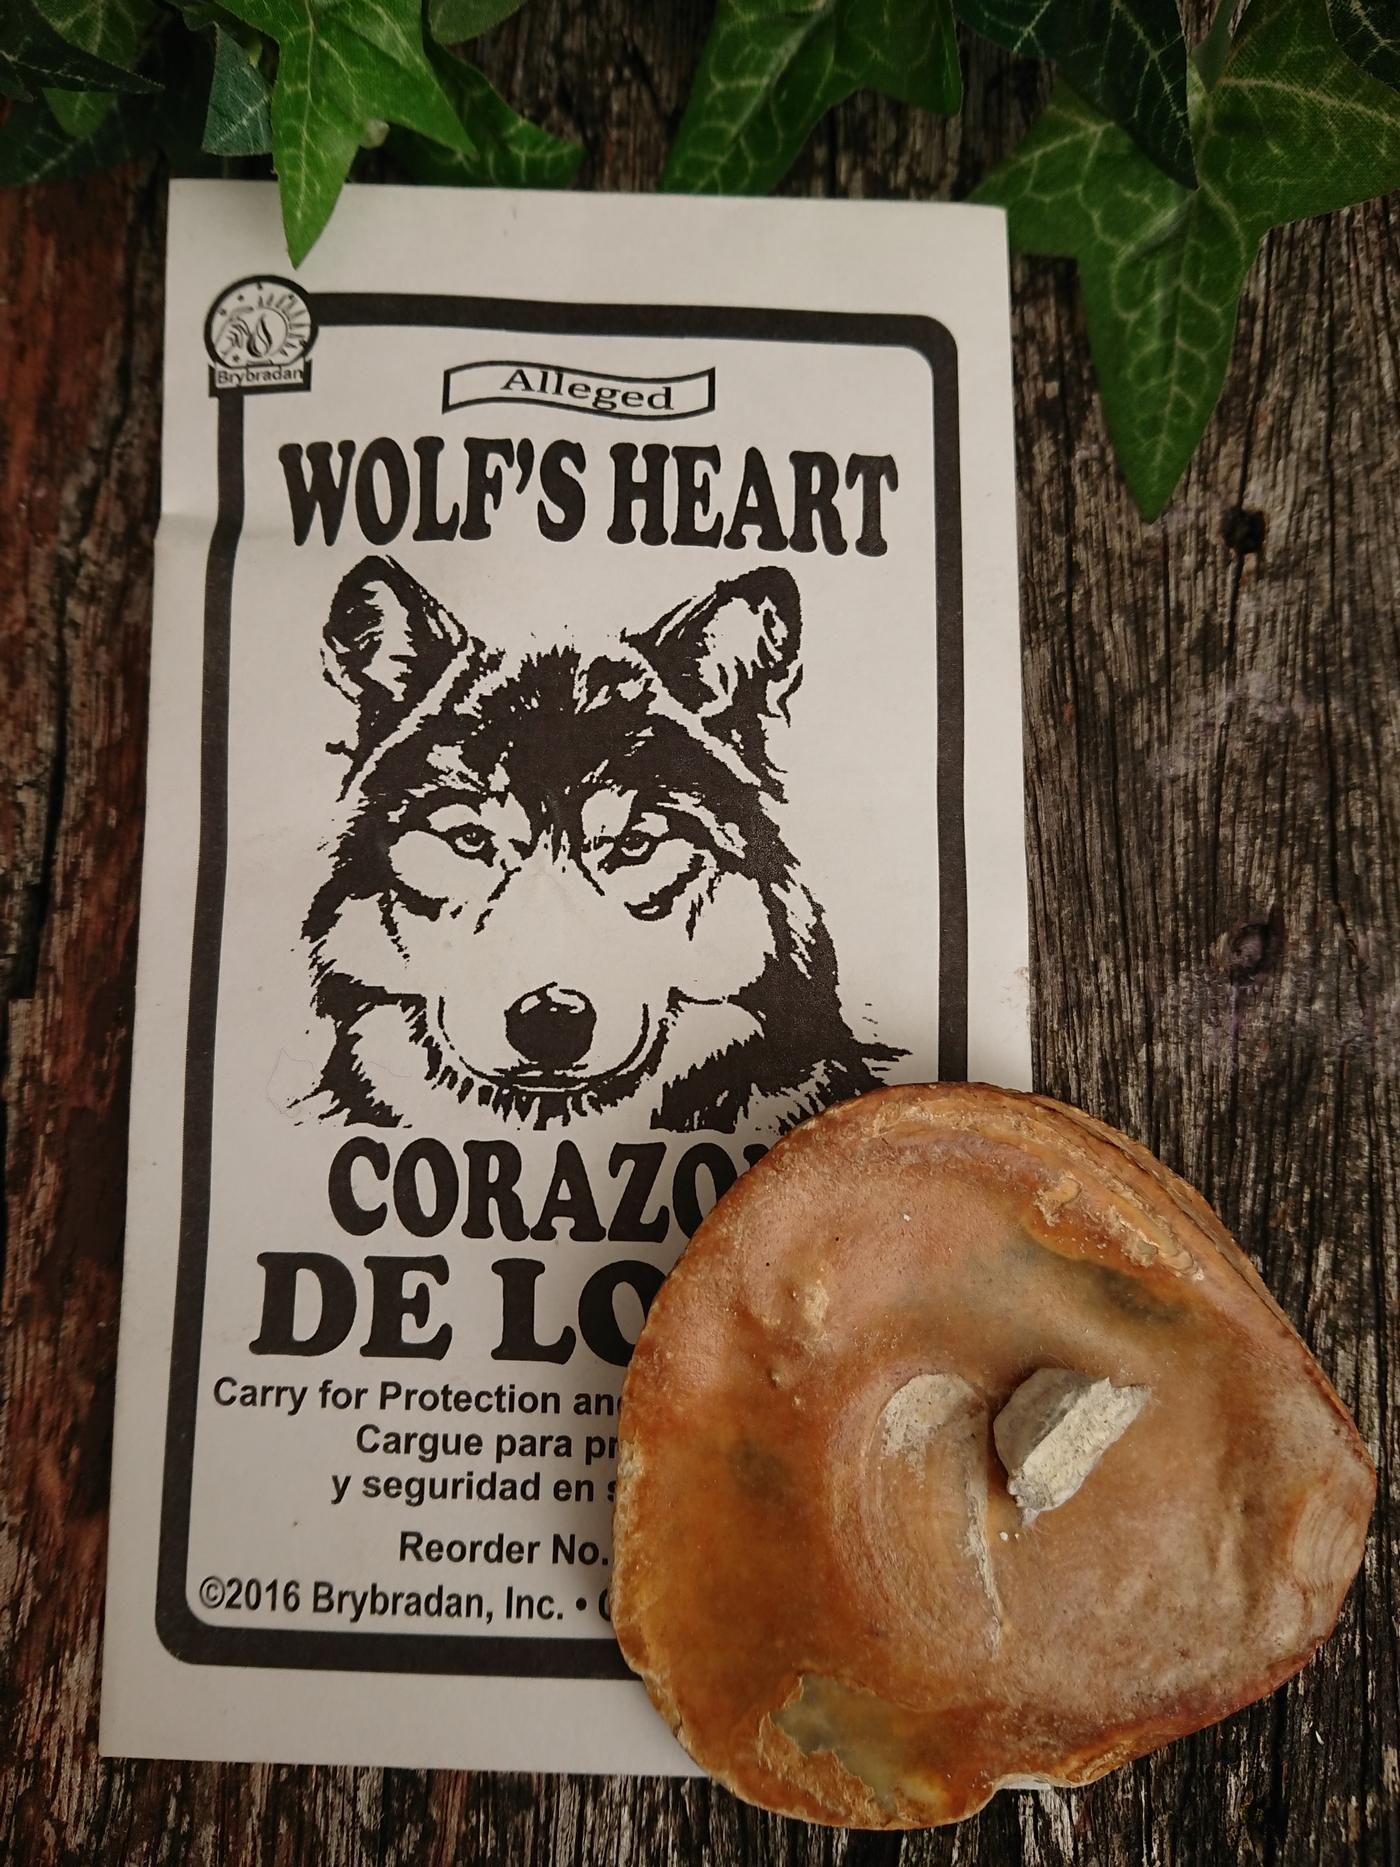 Wolf's Heart root